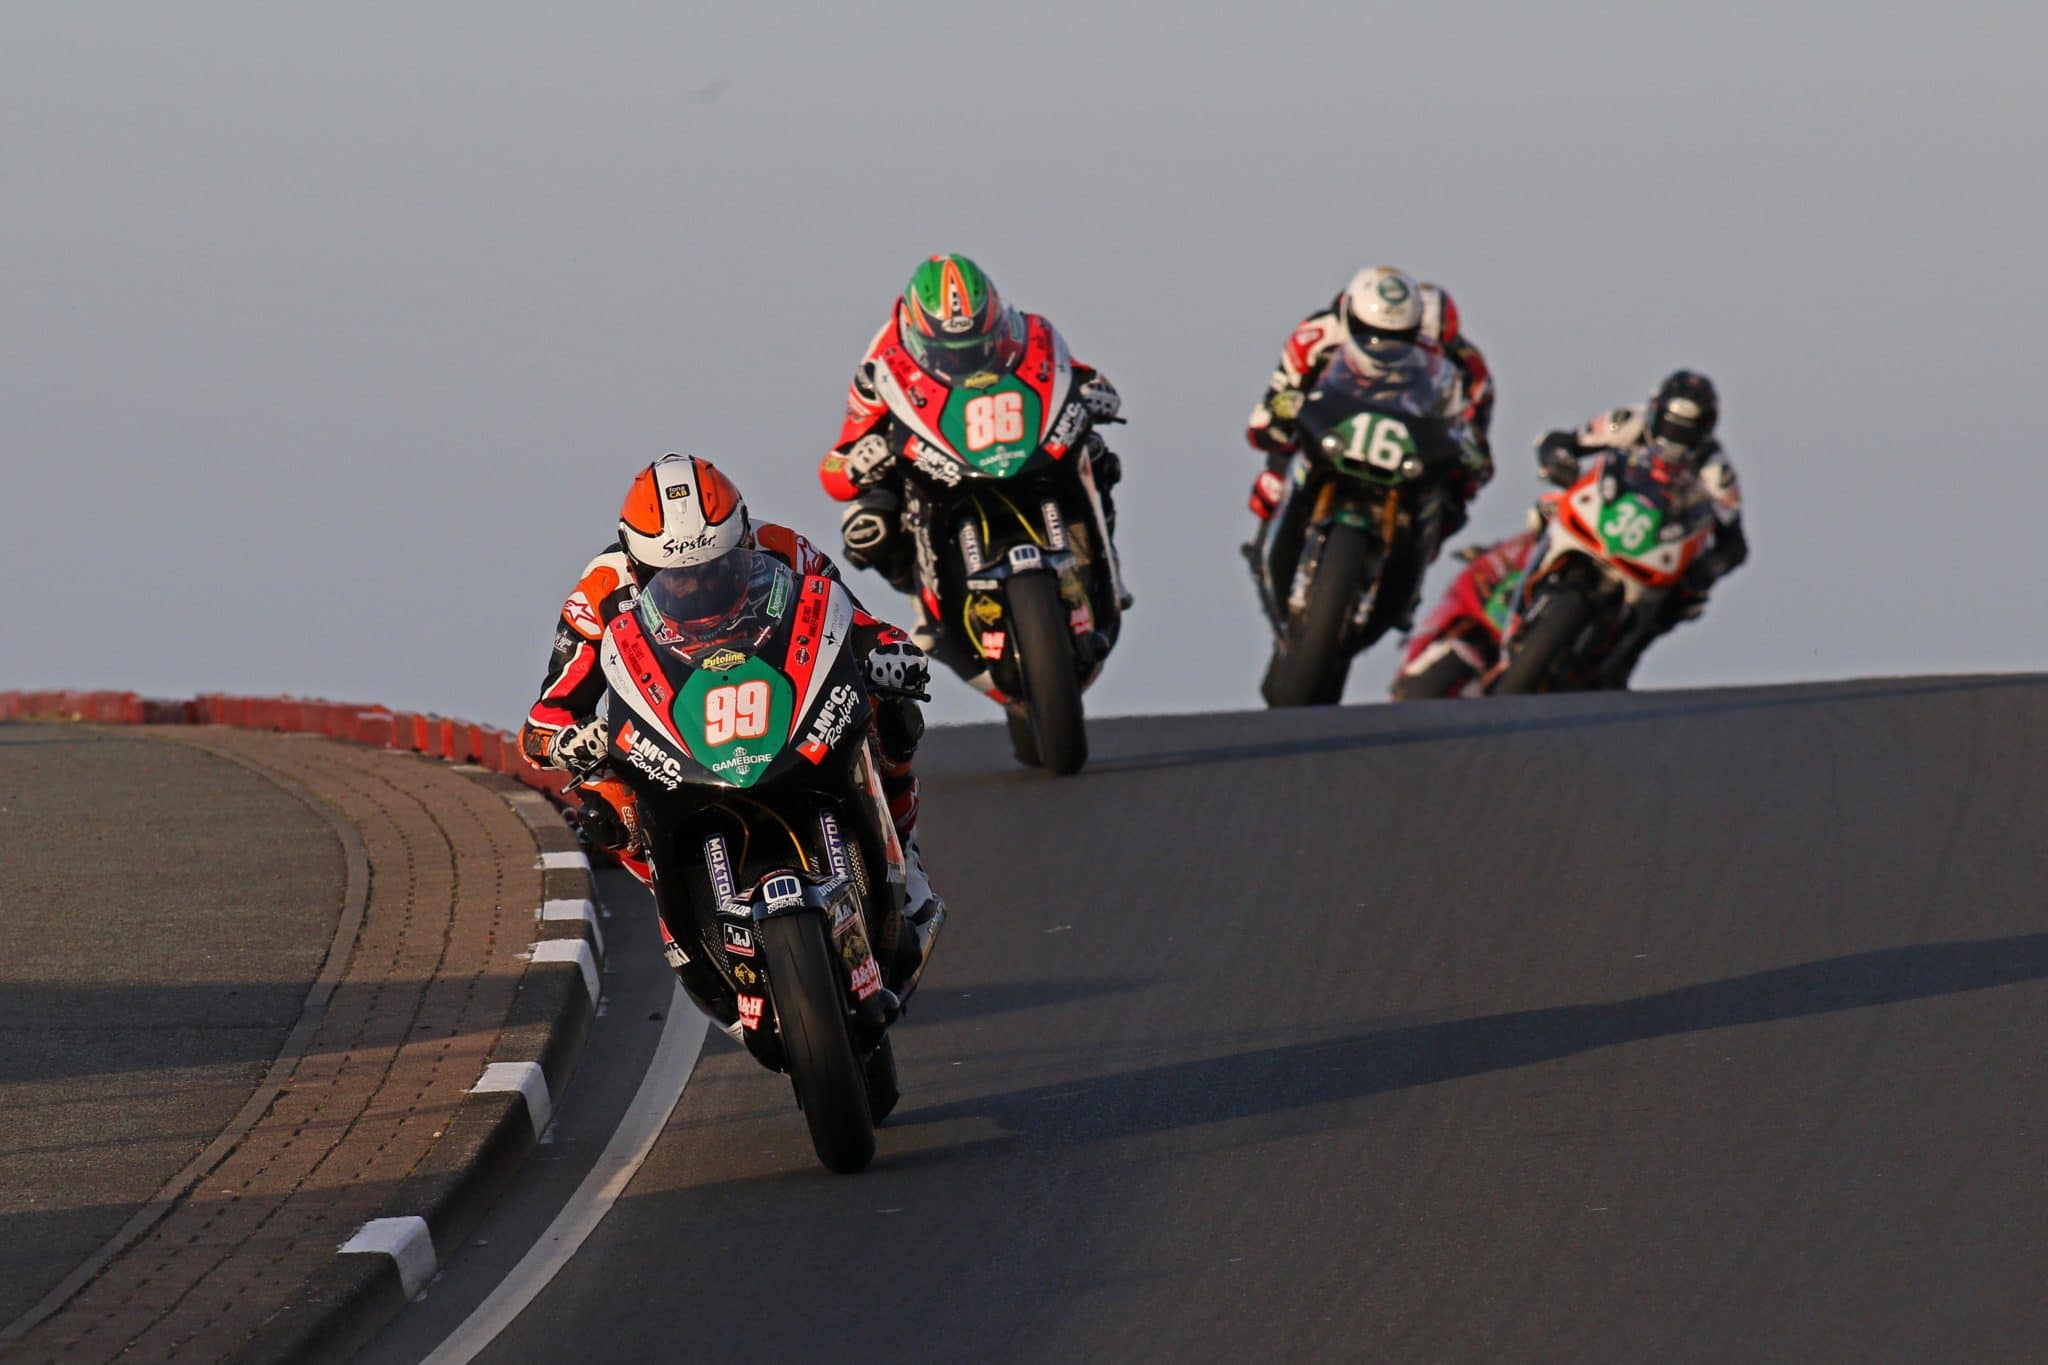 Jeremy McWilliams on his way to another NW200 victory credit Pacemaker Press International